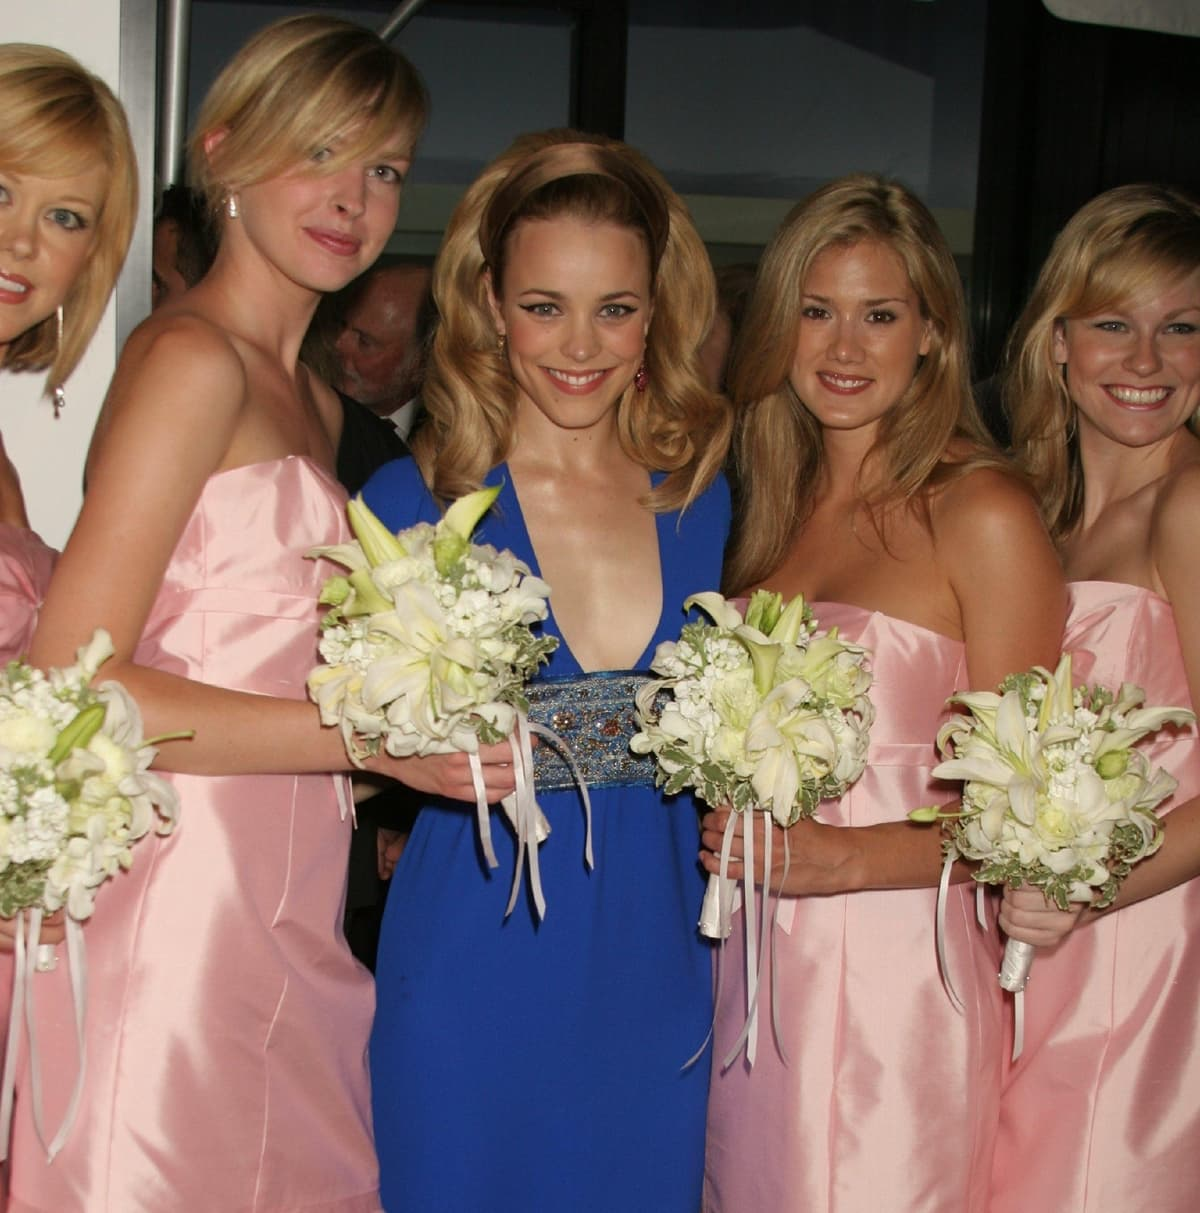 Rachel McAdams was 26 years old when attending the premiere of Wedding Crashers